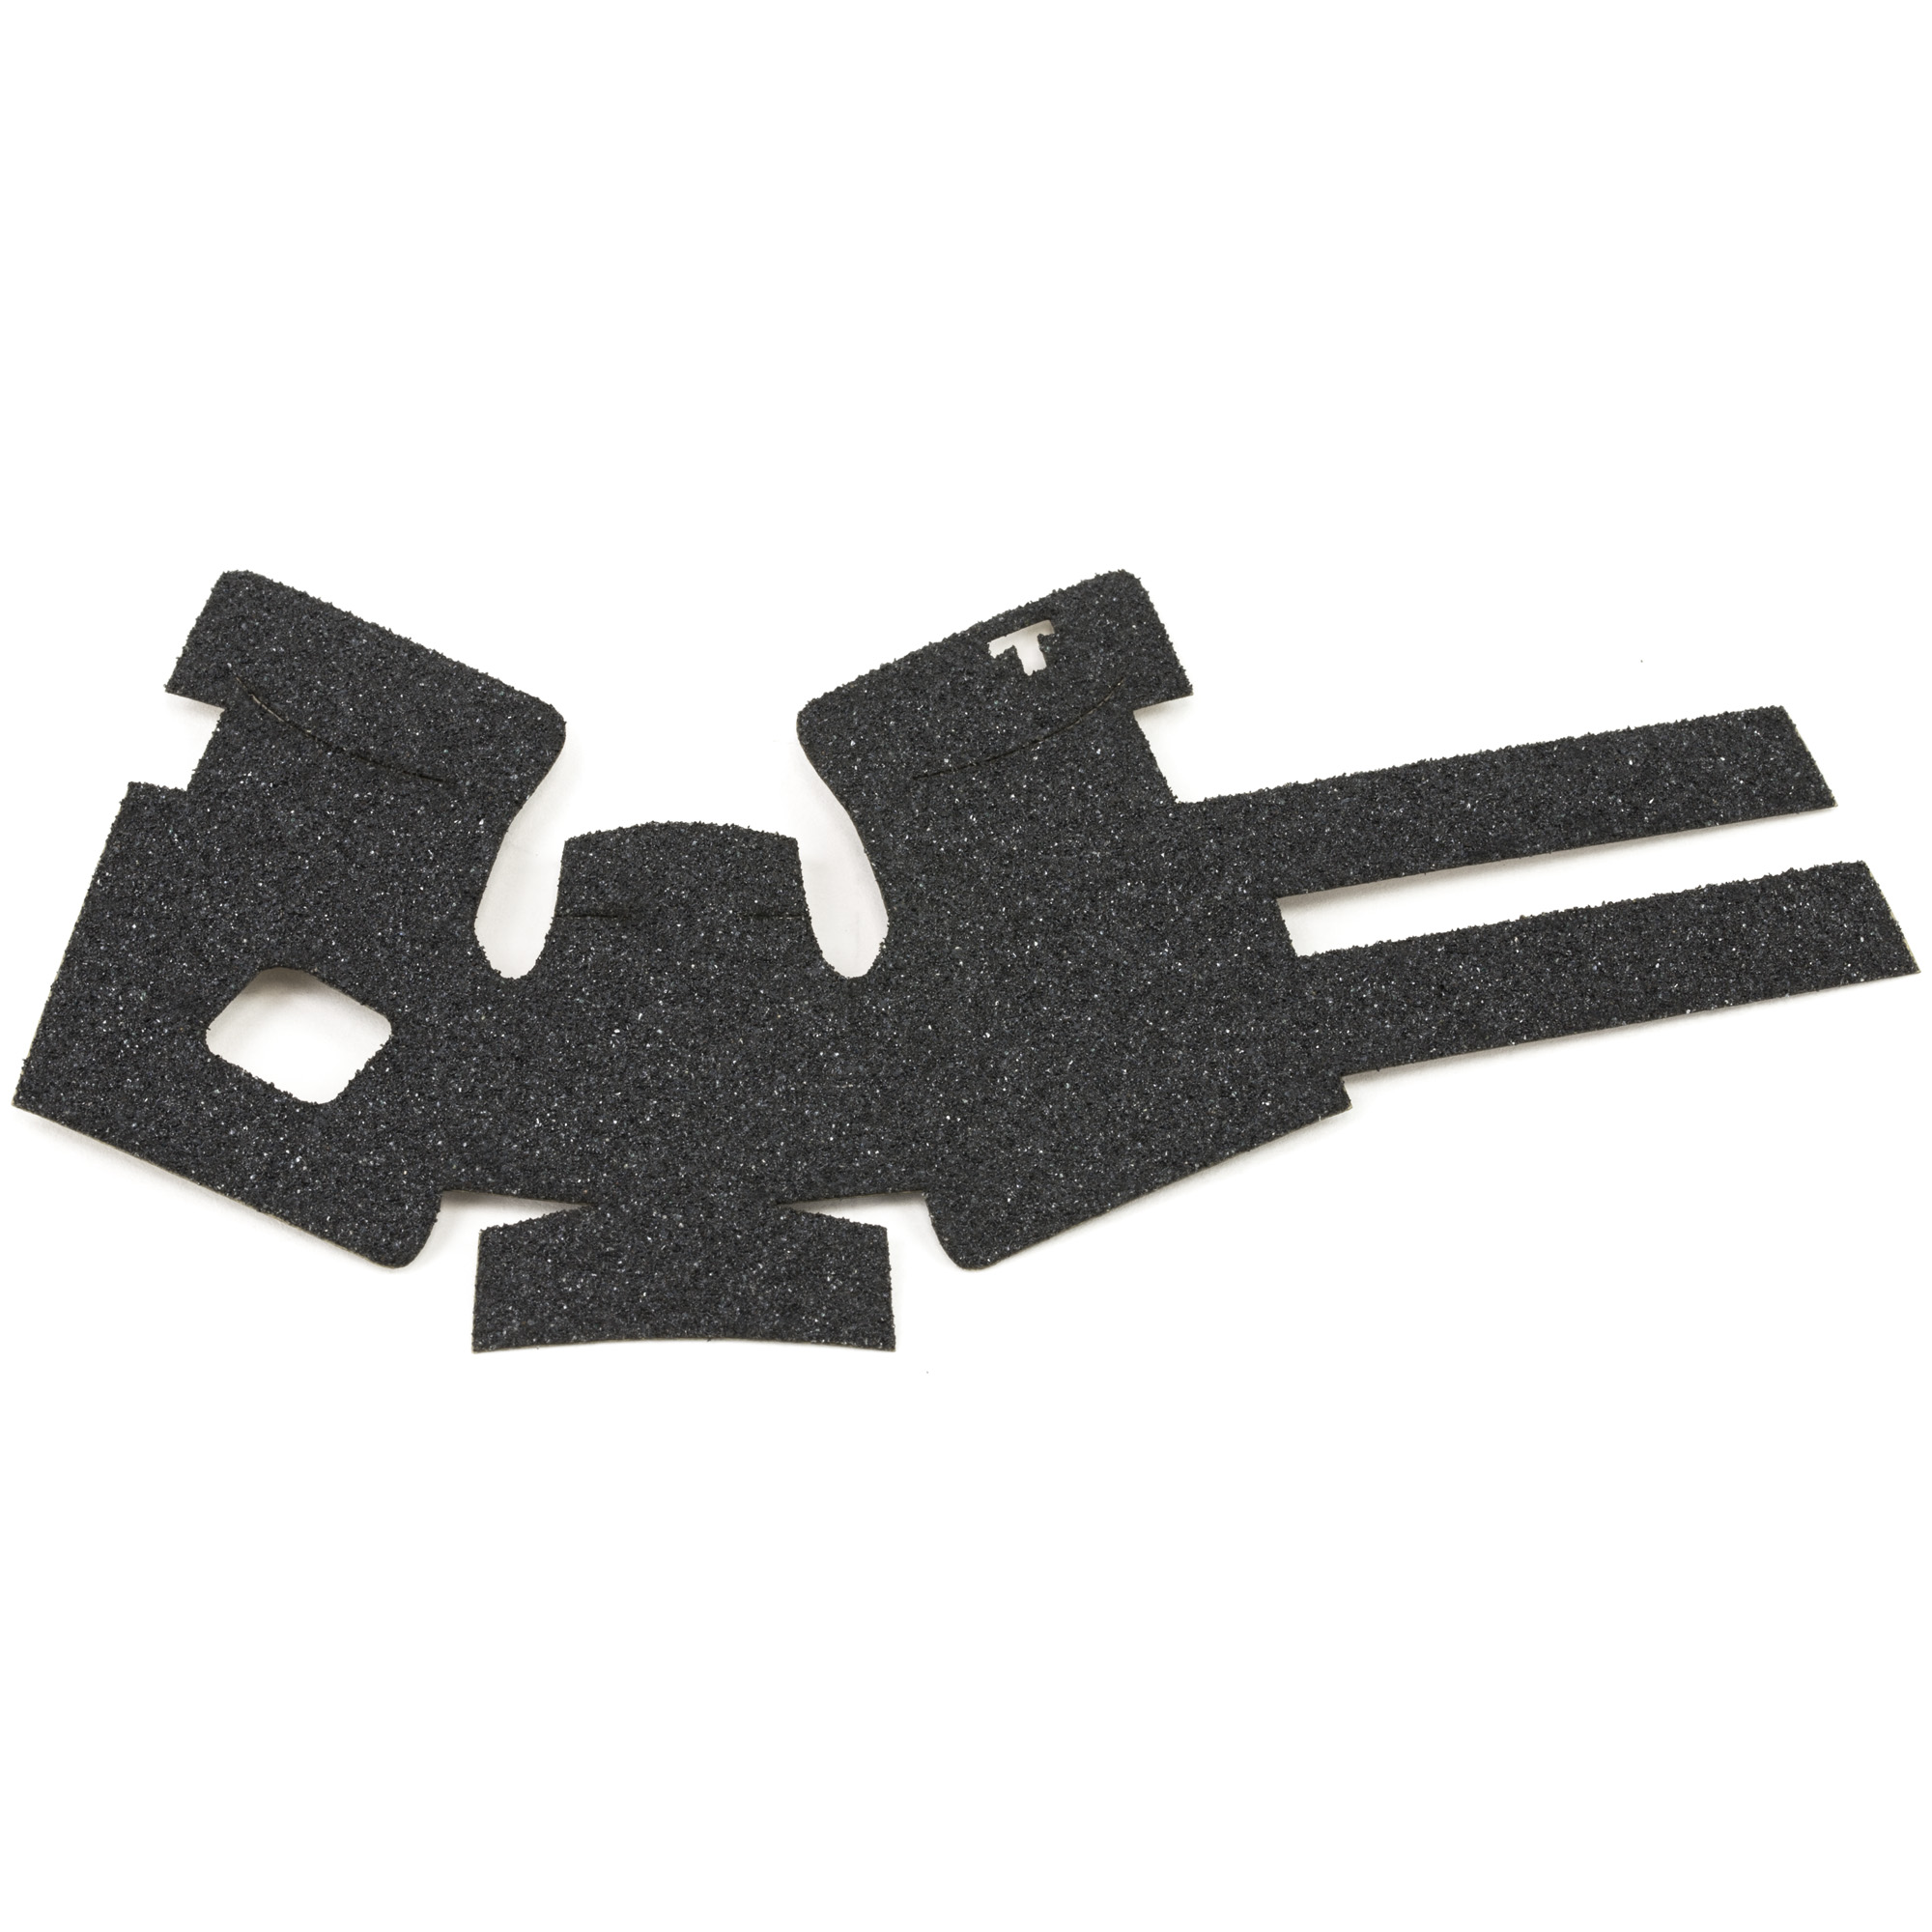 """TALON Grips for Glock Gen 4 Models 26"""" 27"""" 28"""" 33"""" and 39 with No Backstrap. This rear wrap grip is in the granulate texture. This grip provides full coverage on the side panels including above the thumb rest"""" ample coverage on the backstrap"""" and two finger wraps for the finger grooves under the trigger guard. This grip has a logo cutout for the Glock emblem on the left side of the handle. This grip sticks extremely well even with the Rough Textured Frame (RTF)."""